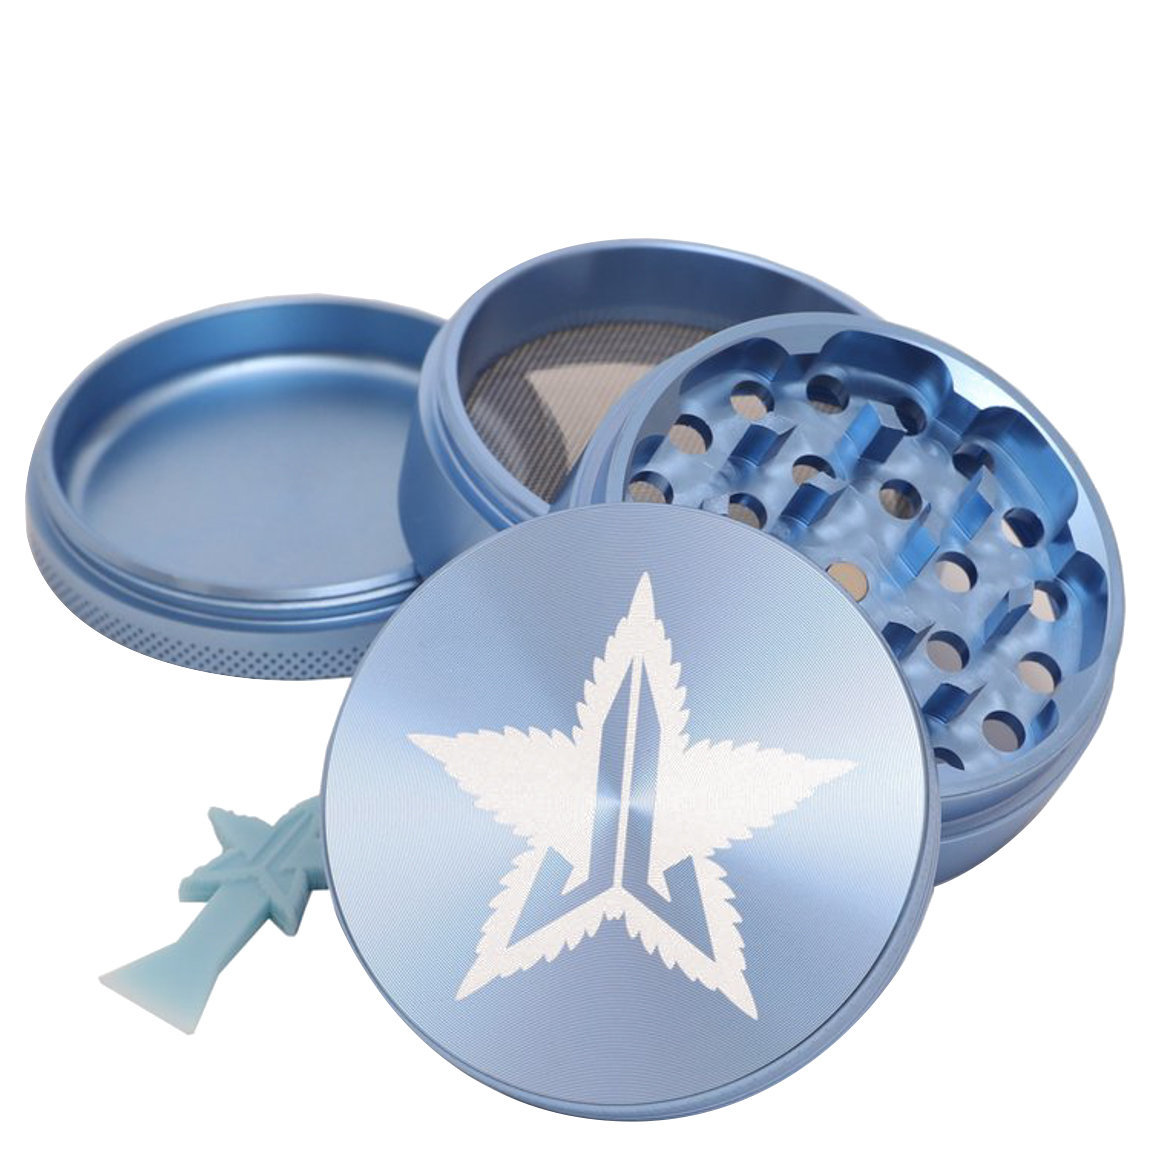 Jeffree Star Cosmetics 63mm Grinder Baby Blue alternative view 1 - product swatch.